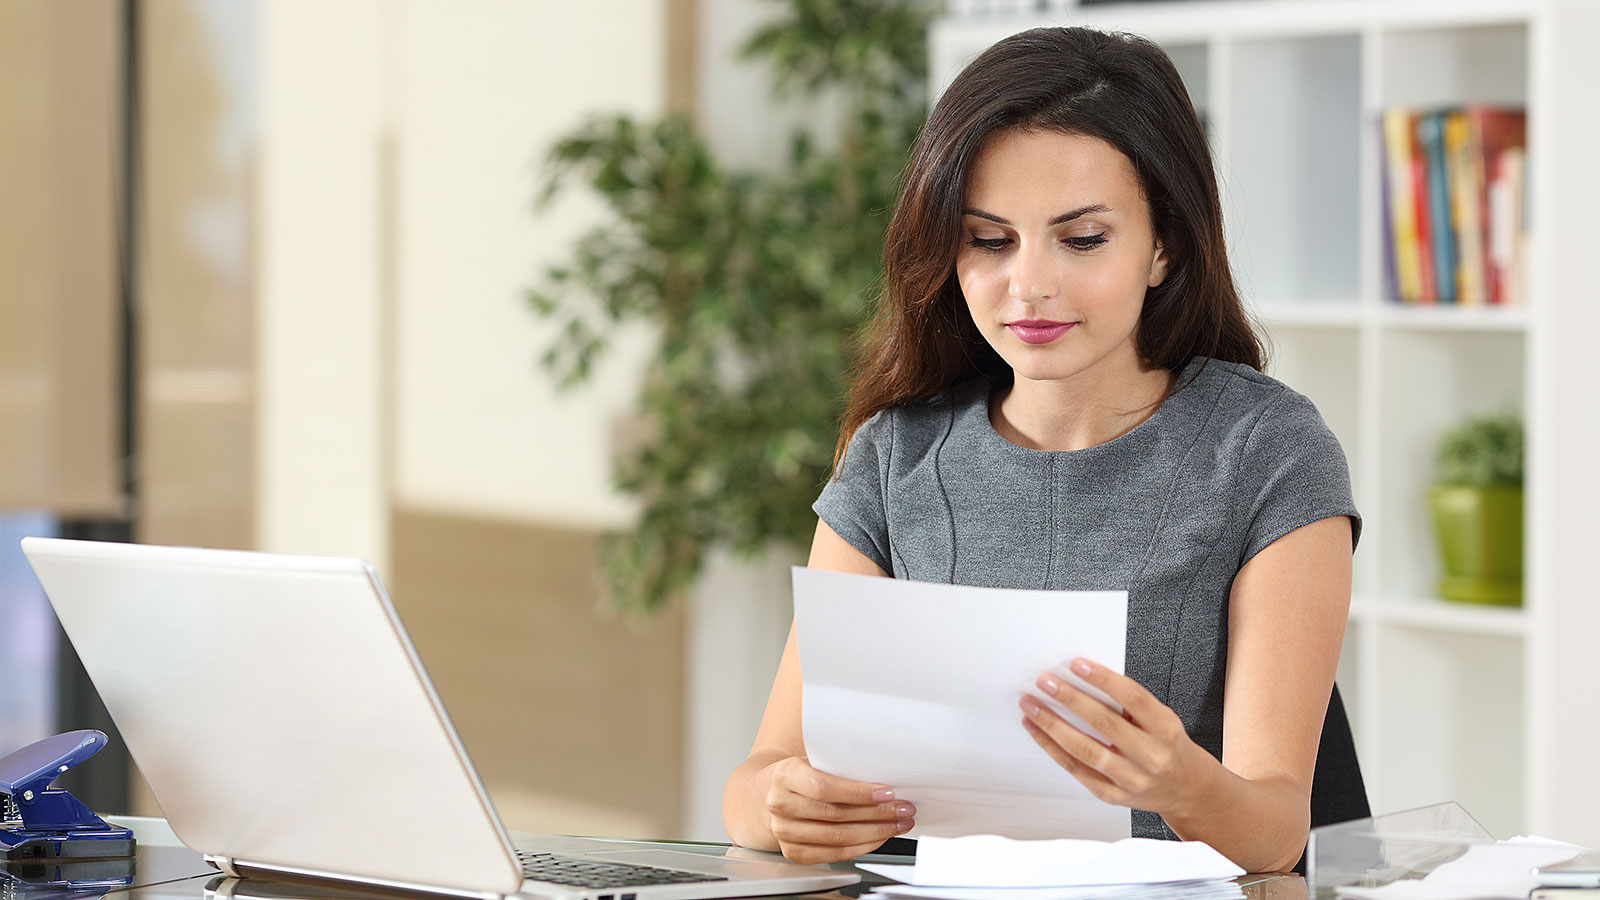 Why you should check your credit report regularly